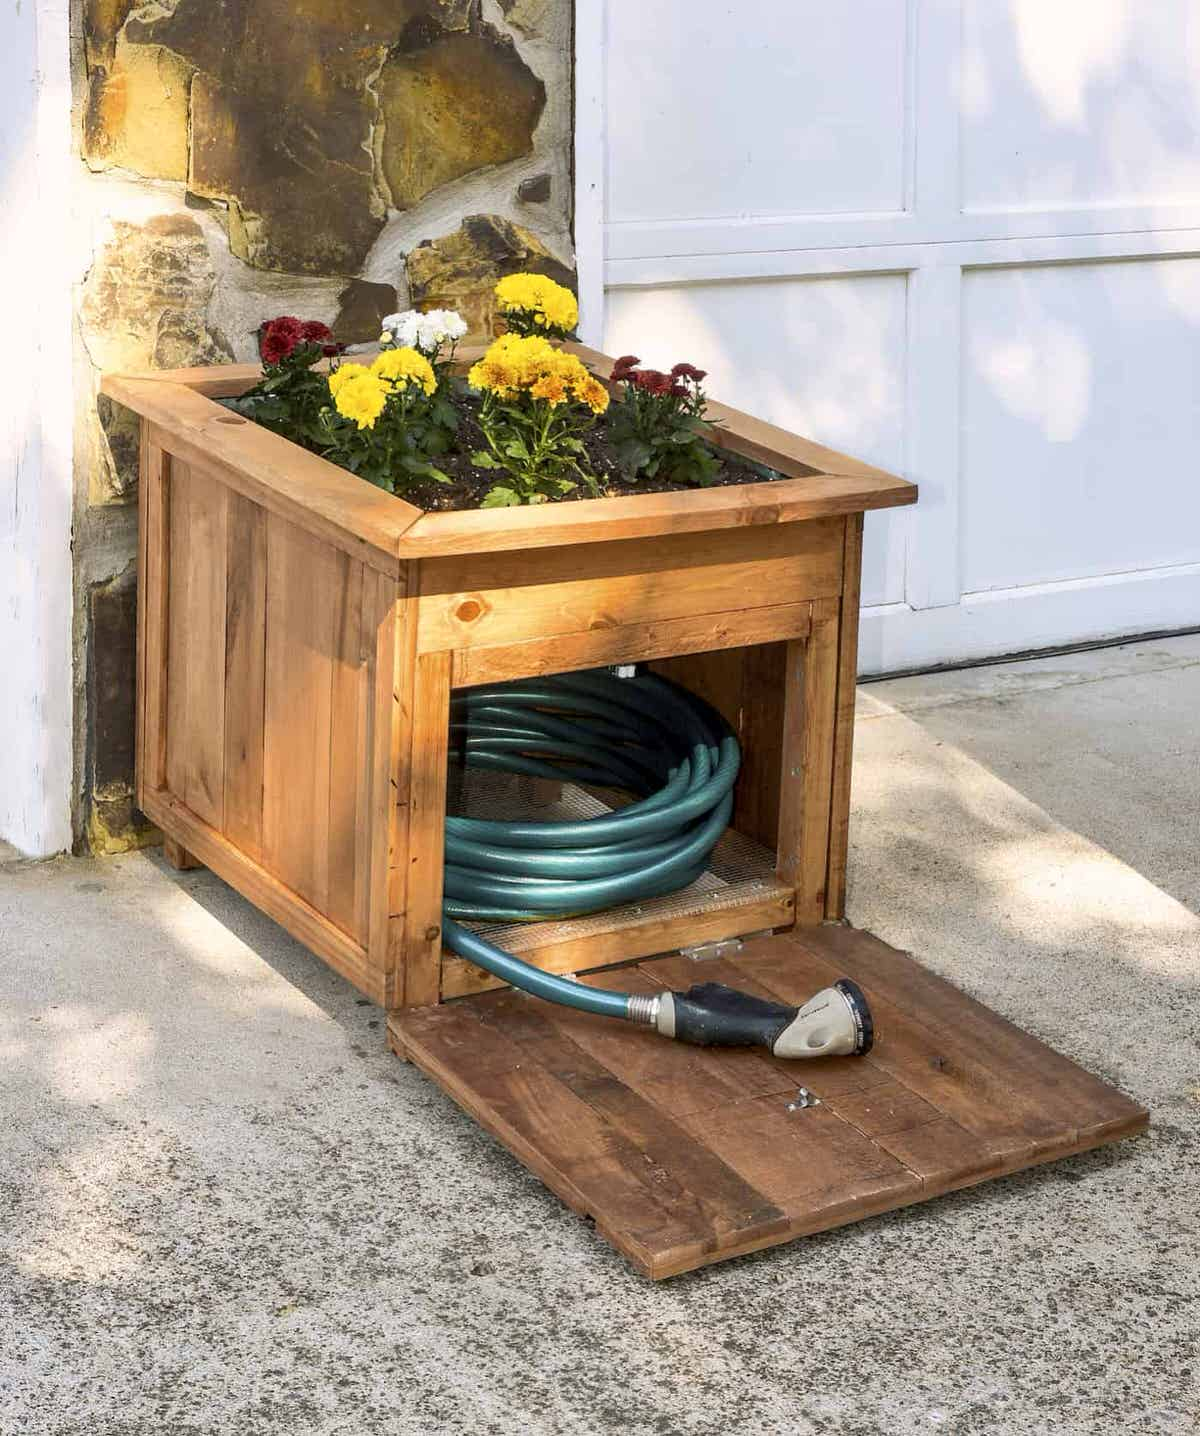 DIY Garden Hose Storage • The Garden Glove